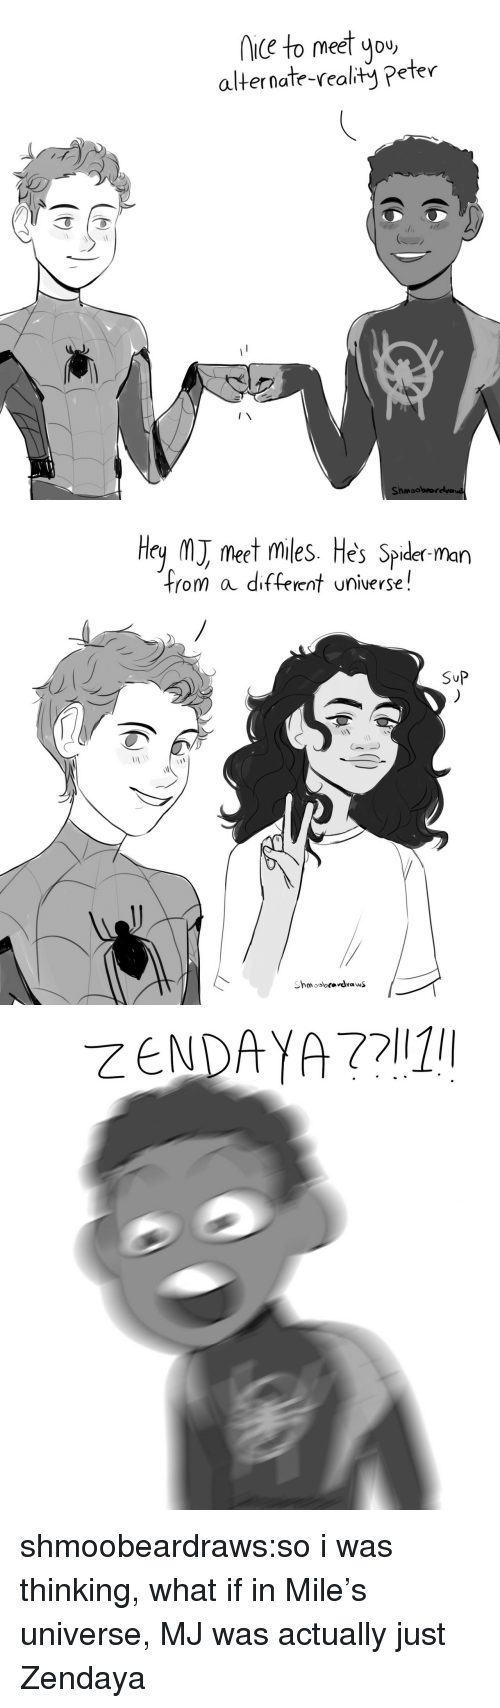 Spider, SpiderMan, and Tumblr: iC to meet you  alternate-realty Peter  Shmoobrarelva   Hey M meet miles. He's Spider man  from a different universe!  SuP shmoobeardraws:so i was thinking, what if in Mile's universe, MJ was actually just Zendaya